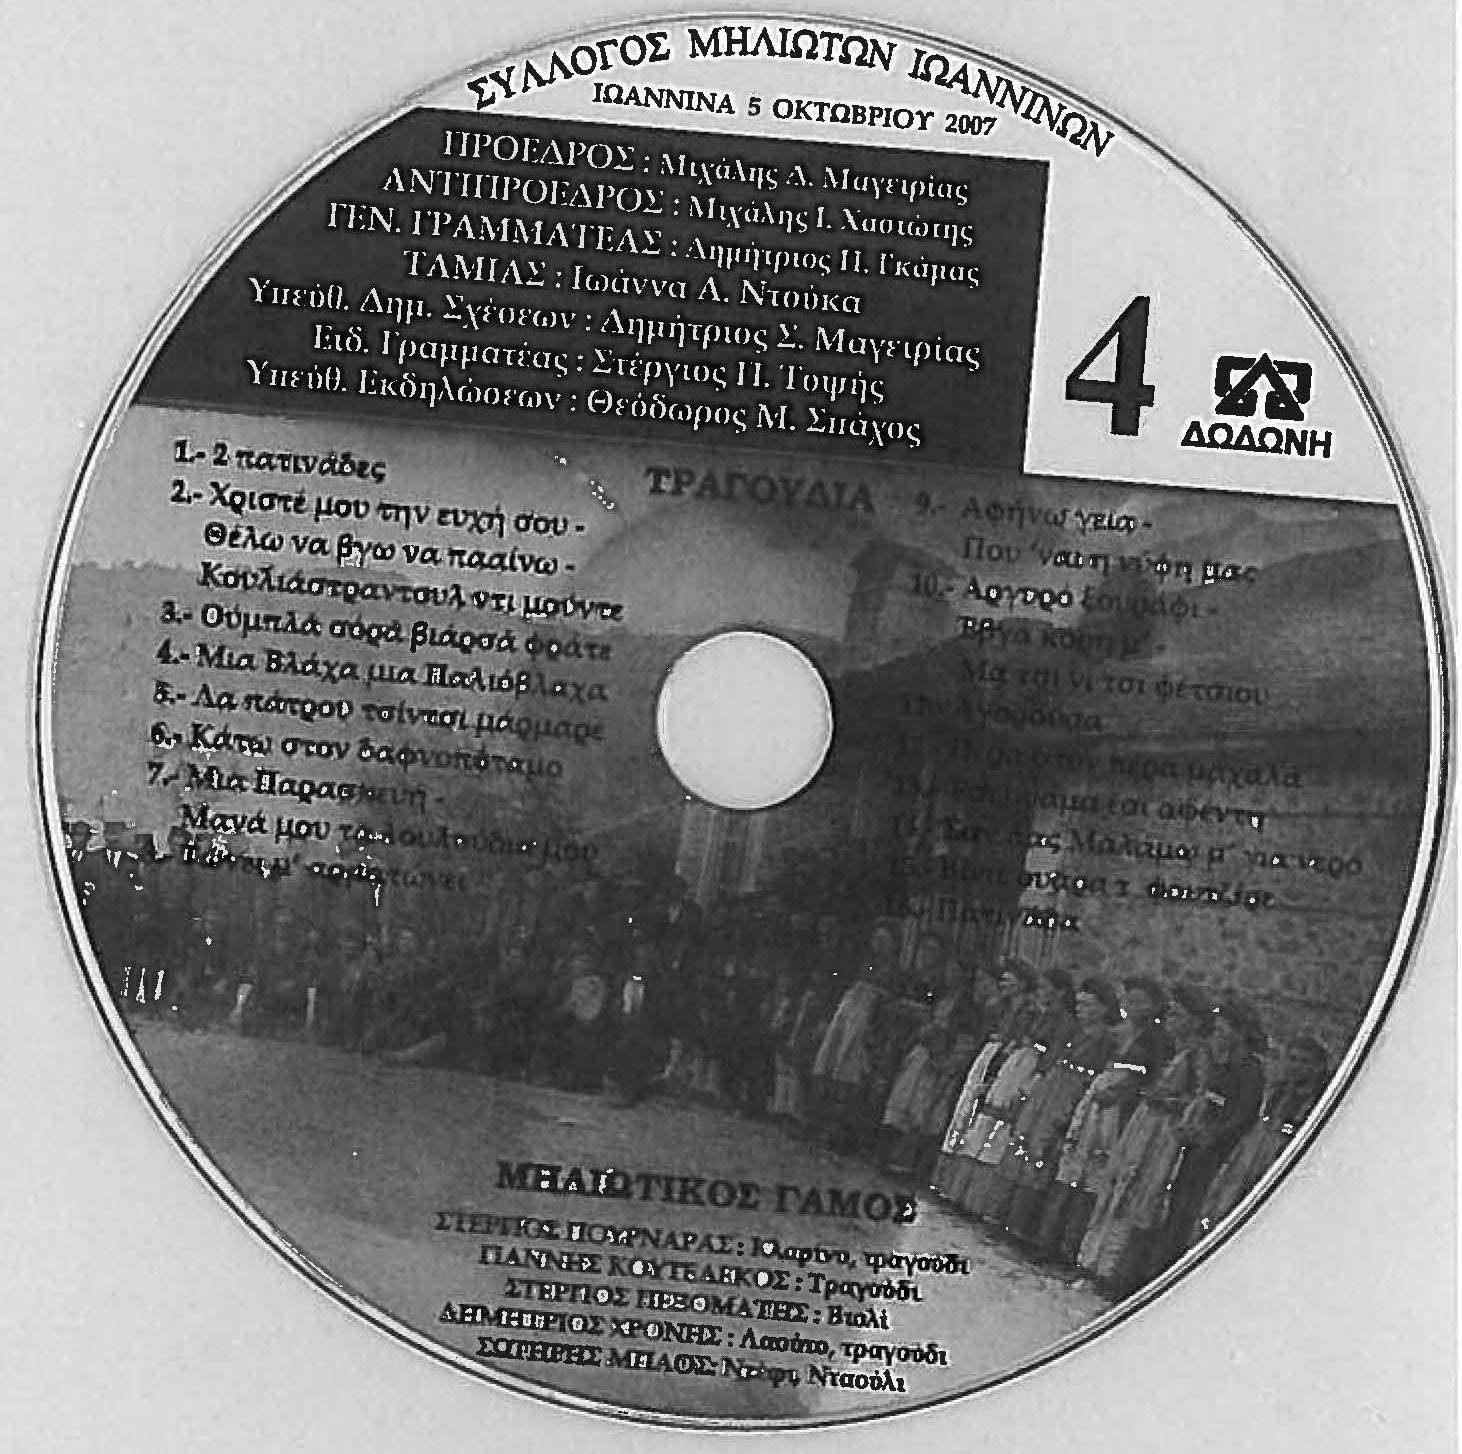 ASSOCIATION OF MILIA IN IOANNINA - SONGS OF MILIA METSOVO 2009 CD4